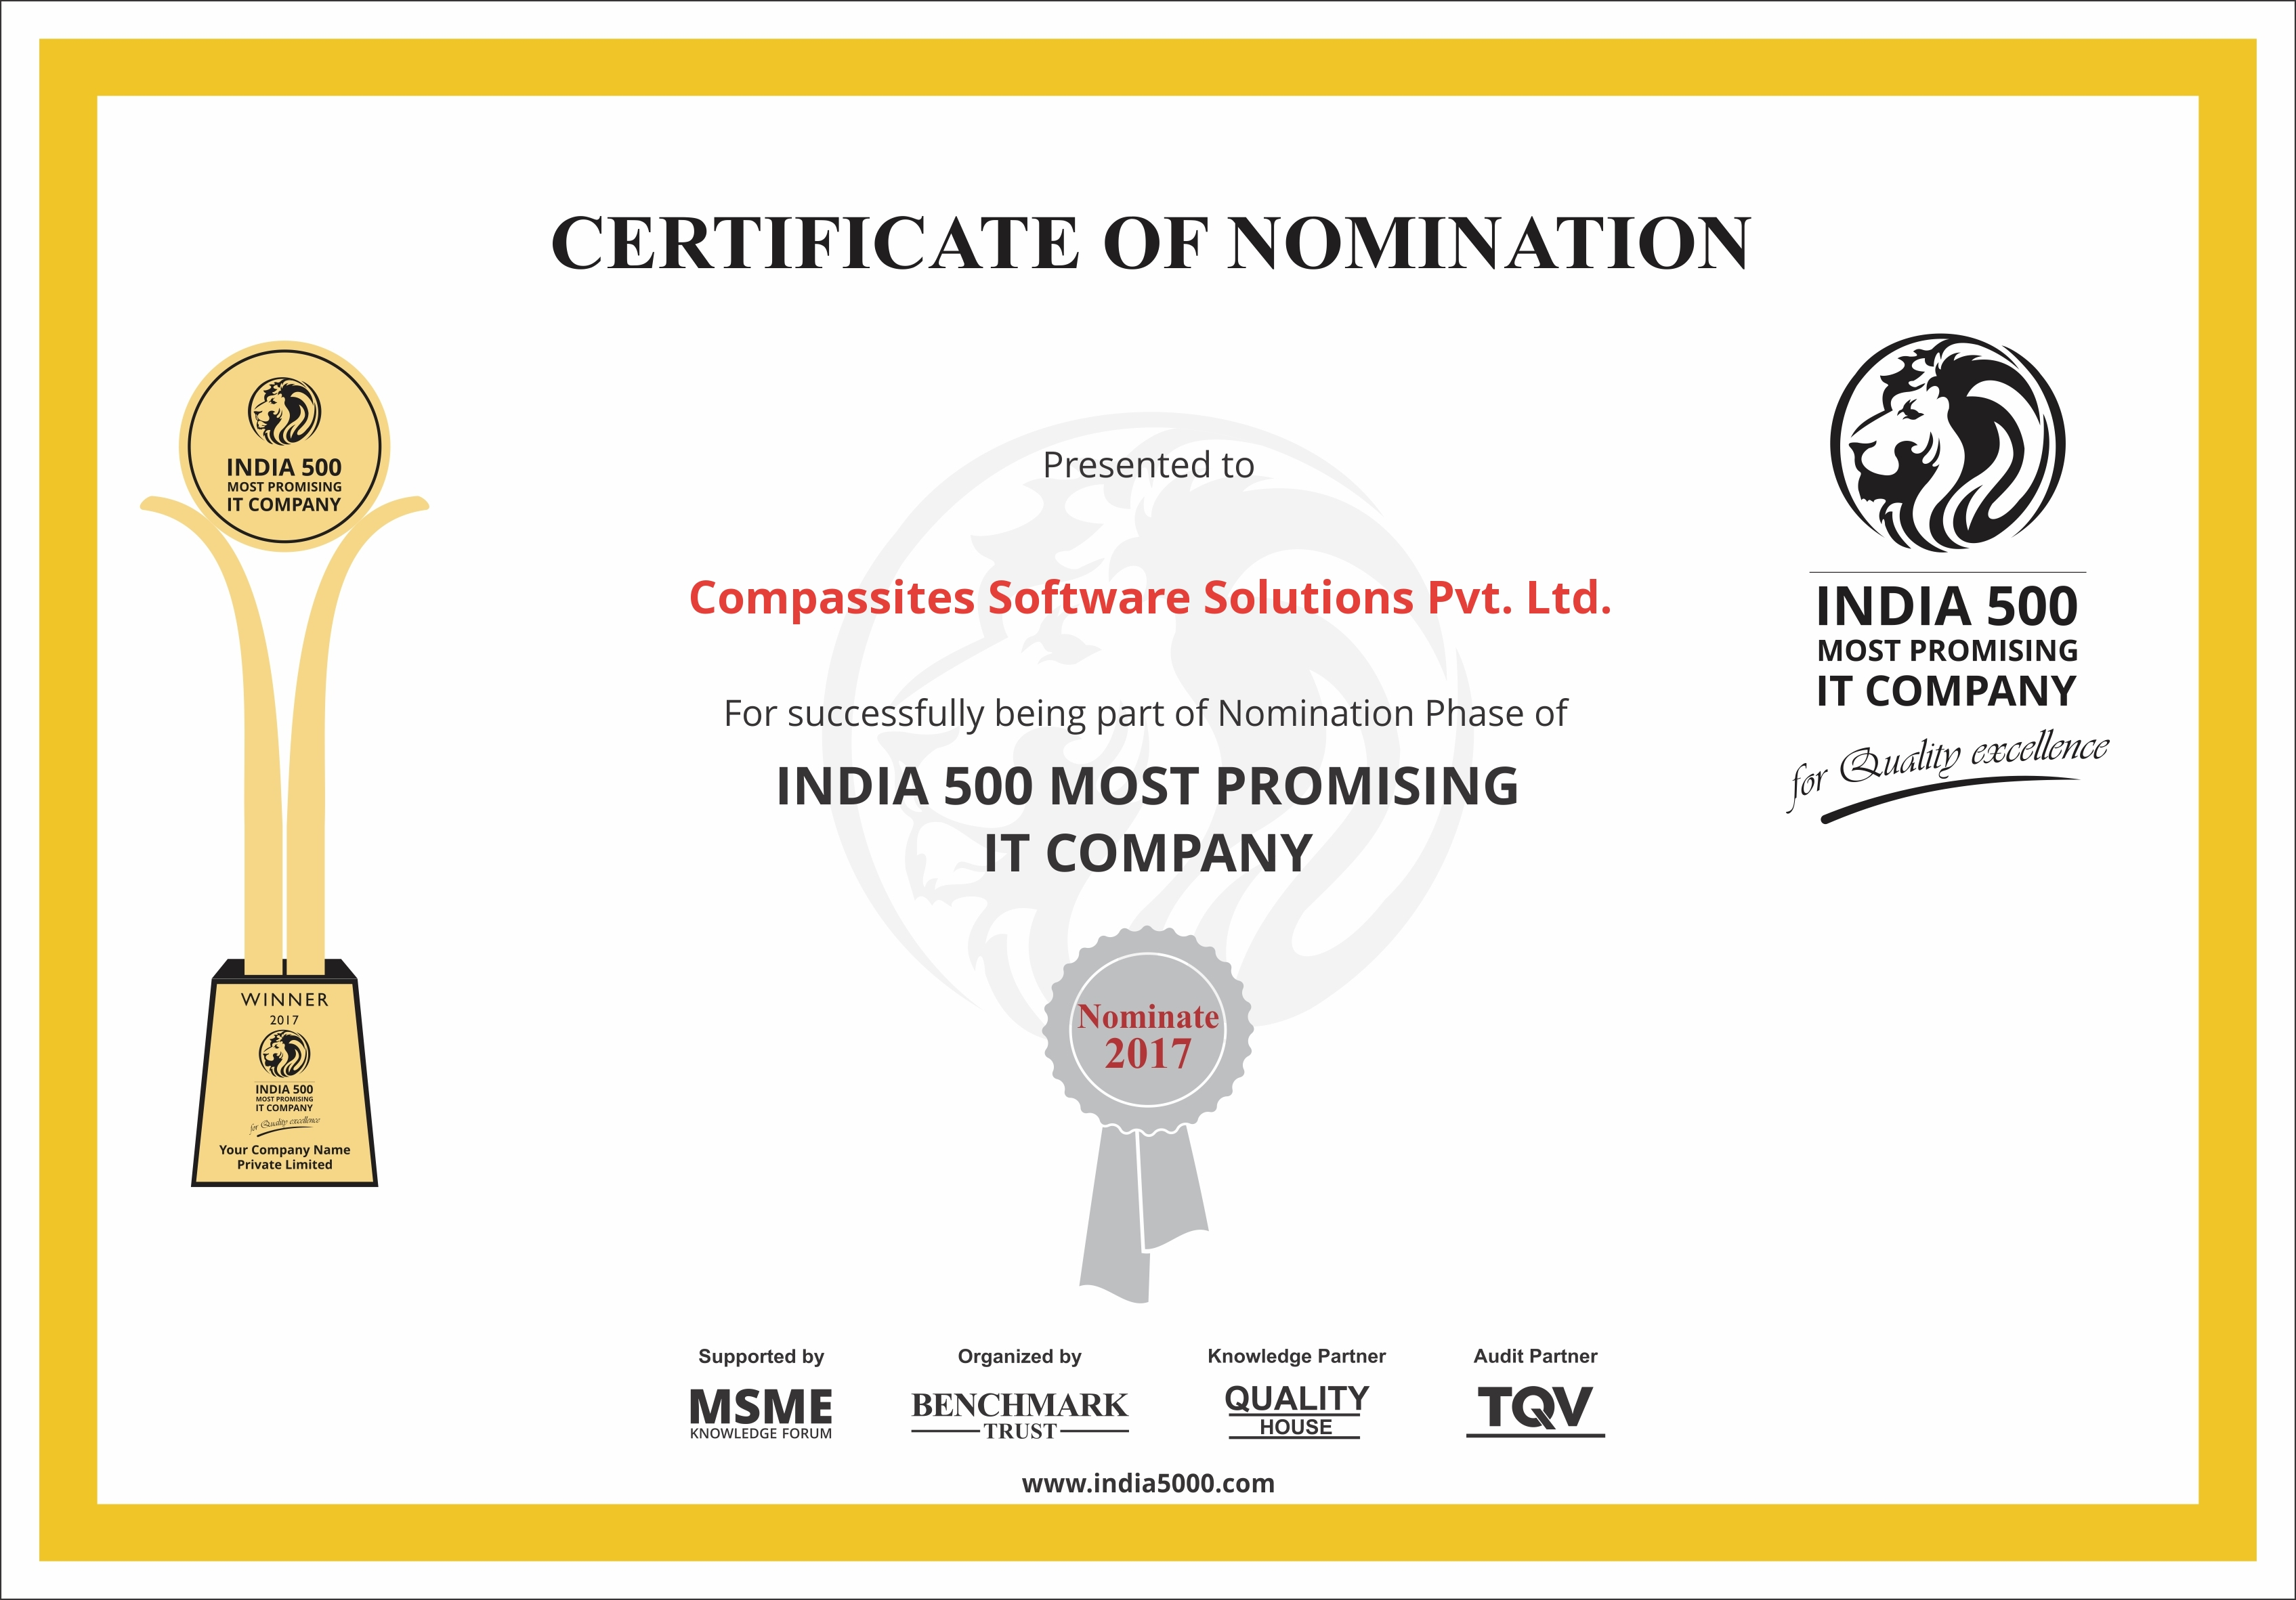 india-500-most-promising-it-company-2017